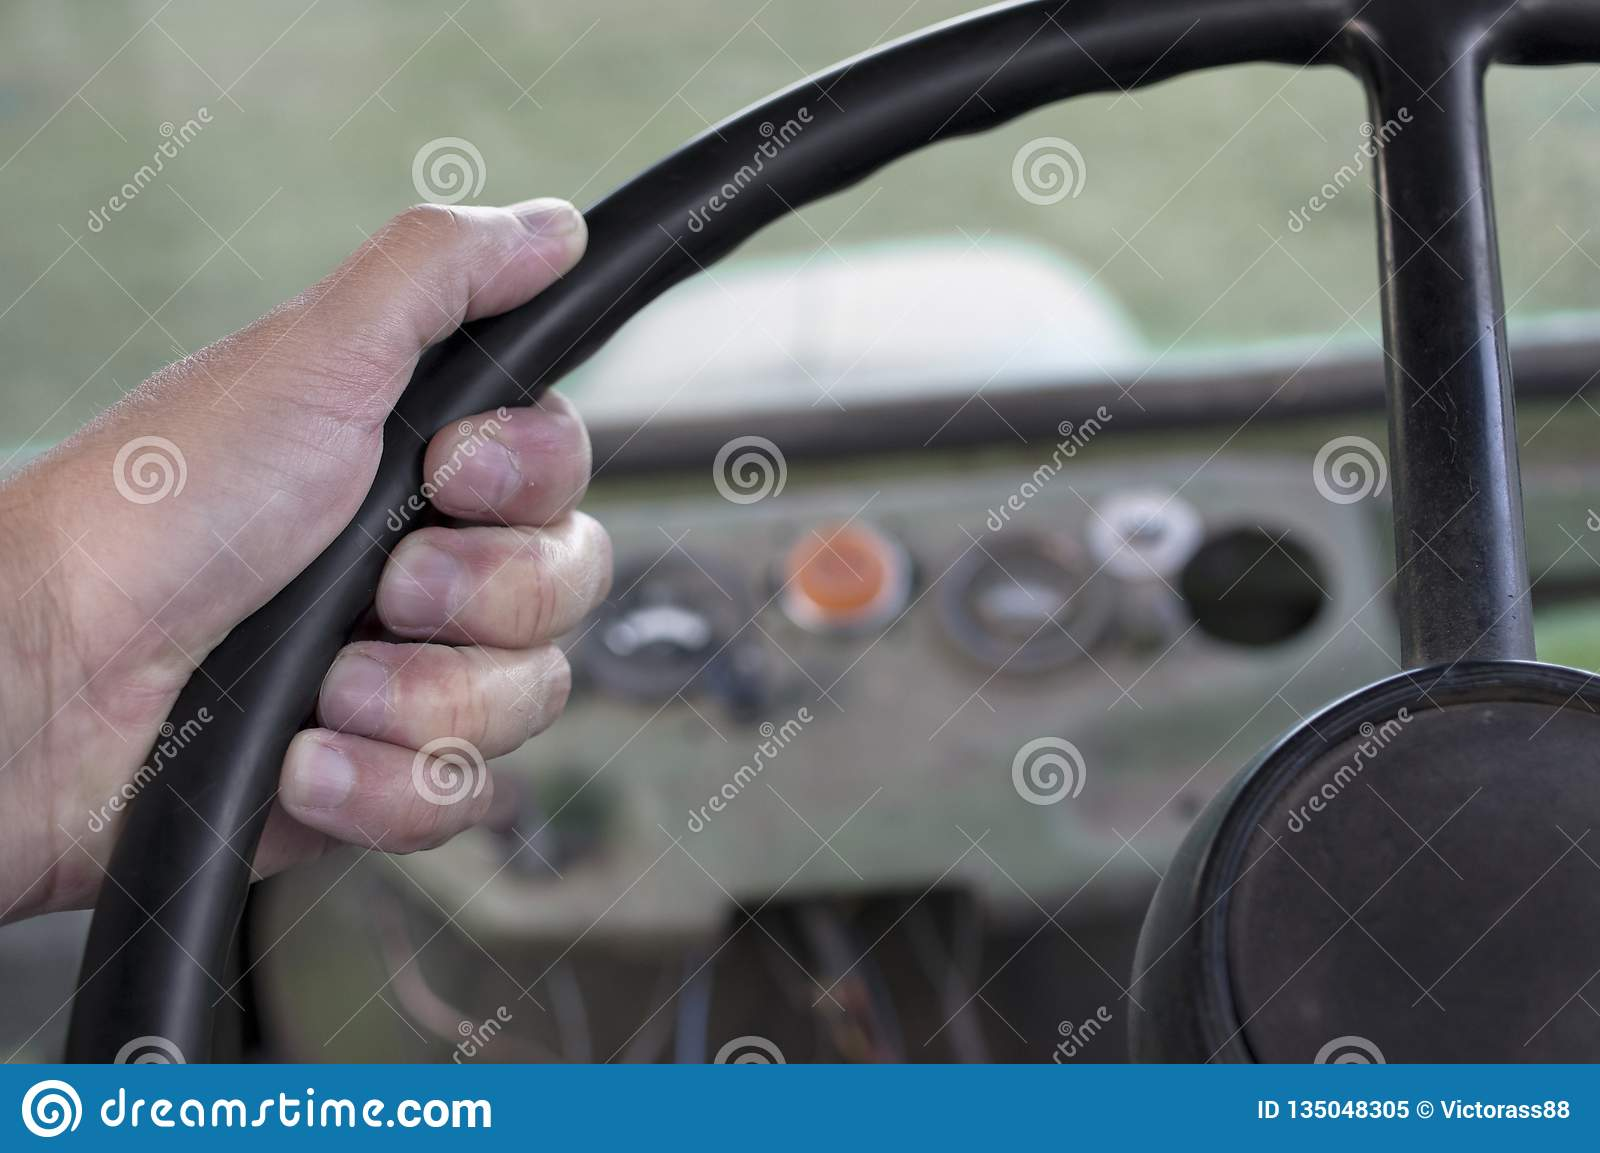 Driving retro transport stock image  Image of grip, driving - 135048305